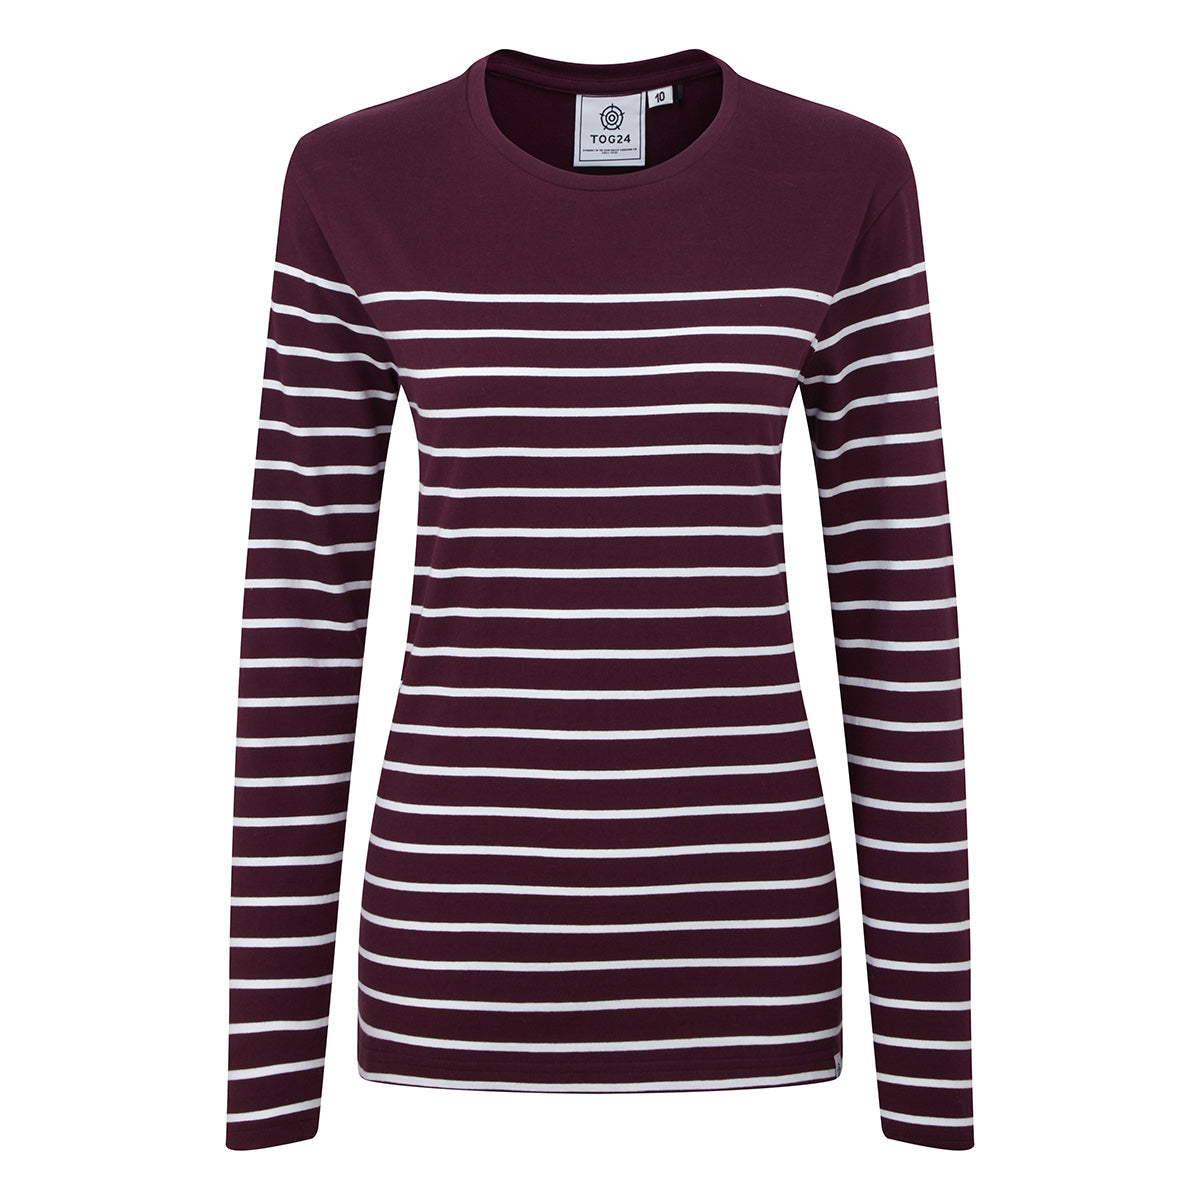 Braythorn Womens Long Sleeve Stripe T-Shirt - Aubergine image 4